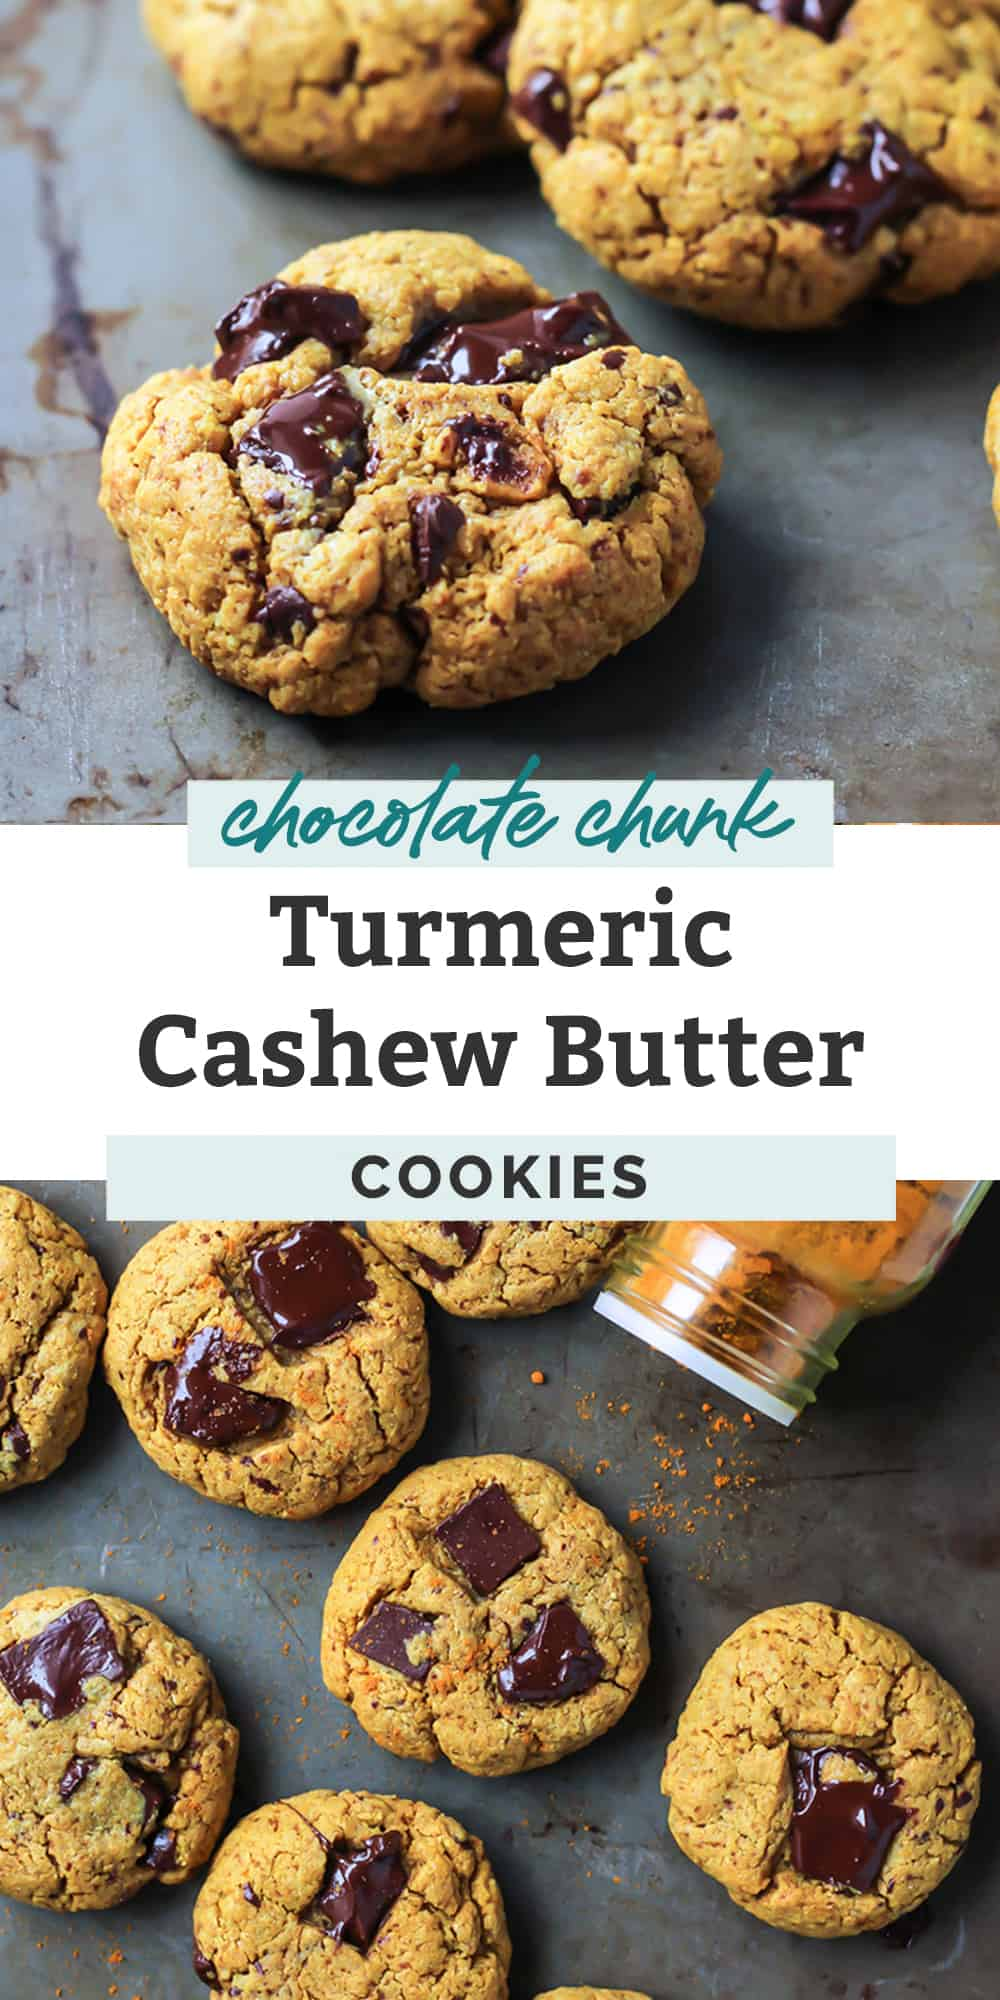 Chocolate Chunk Turmeric Cashew Butter Cookies with tumeric spice shaker on cookie sheet pinterest